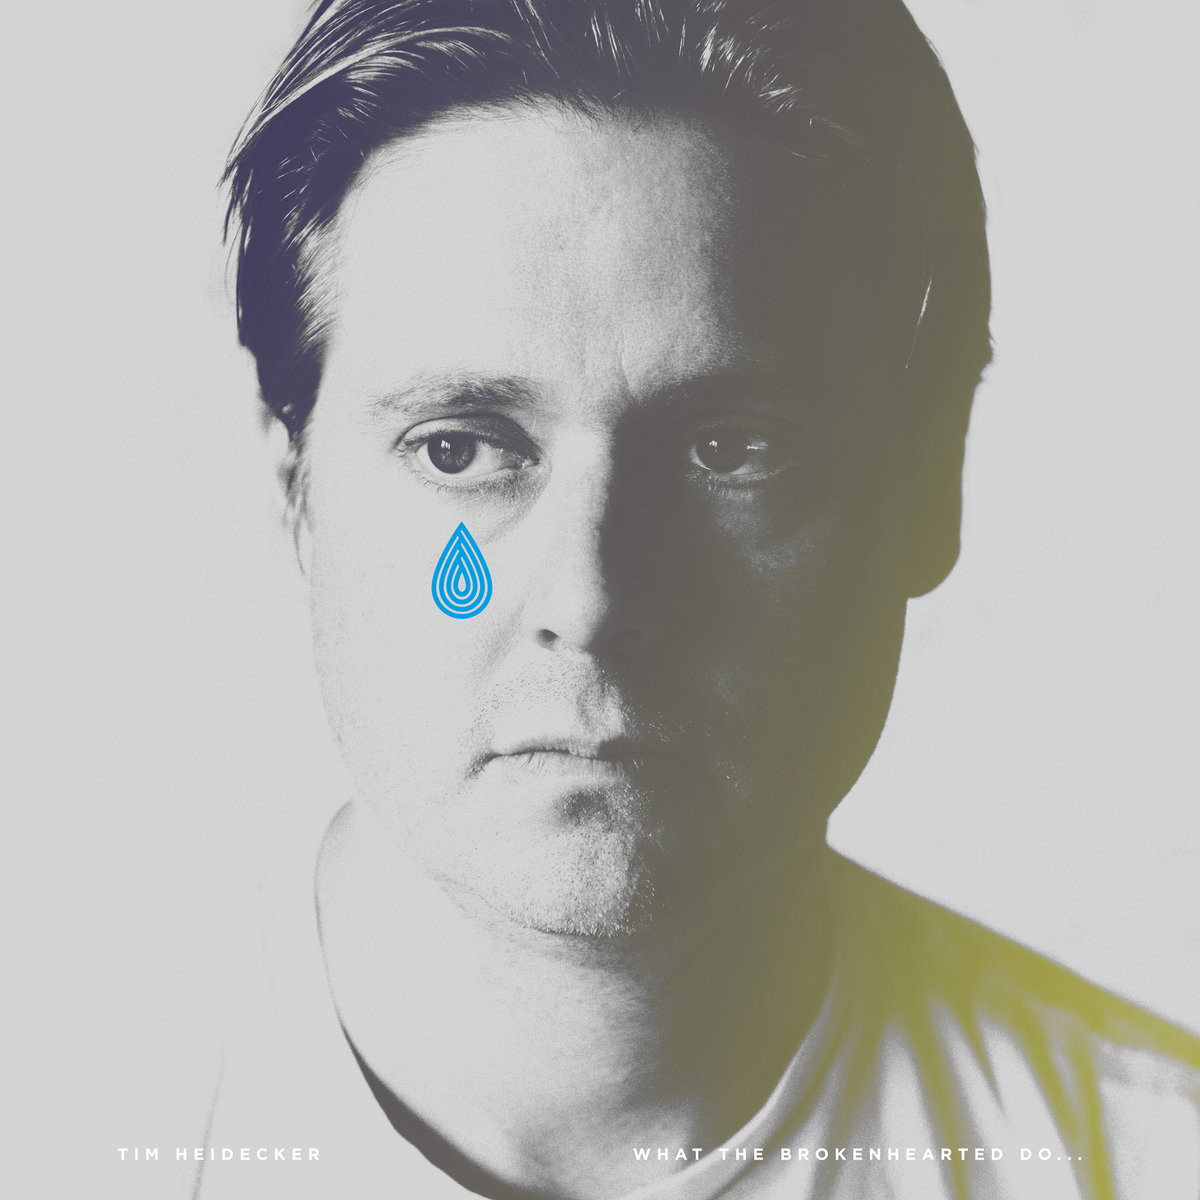 Image result for what the brokenhearted do tim heidecker